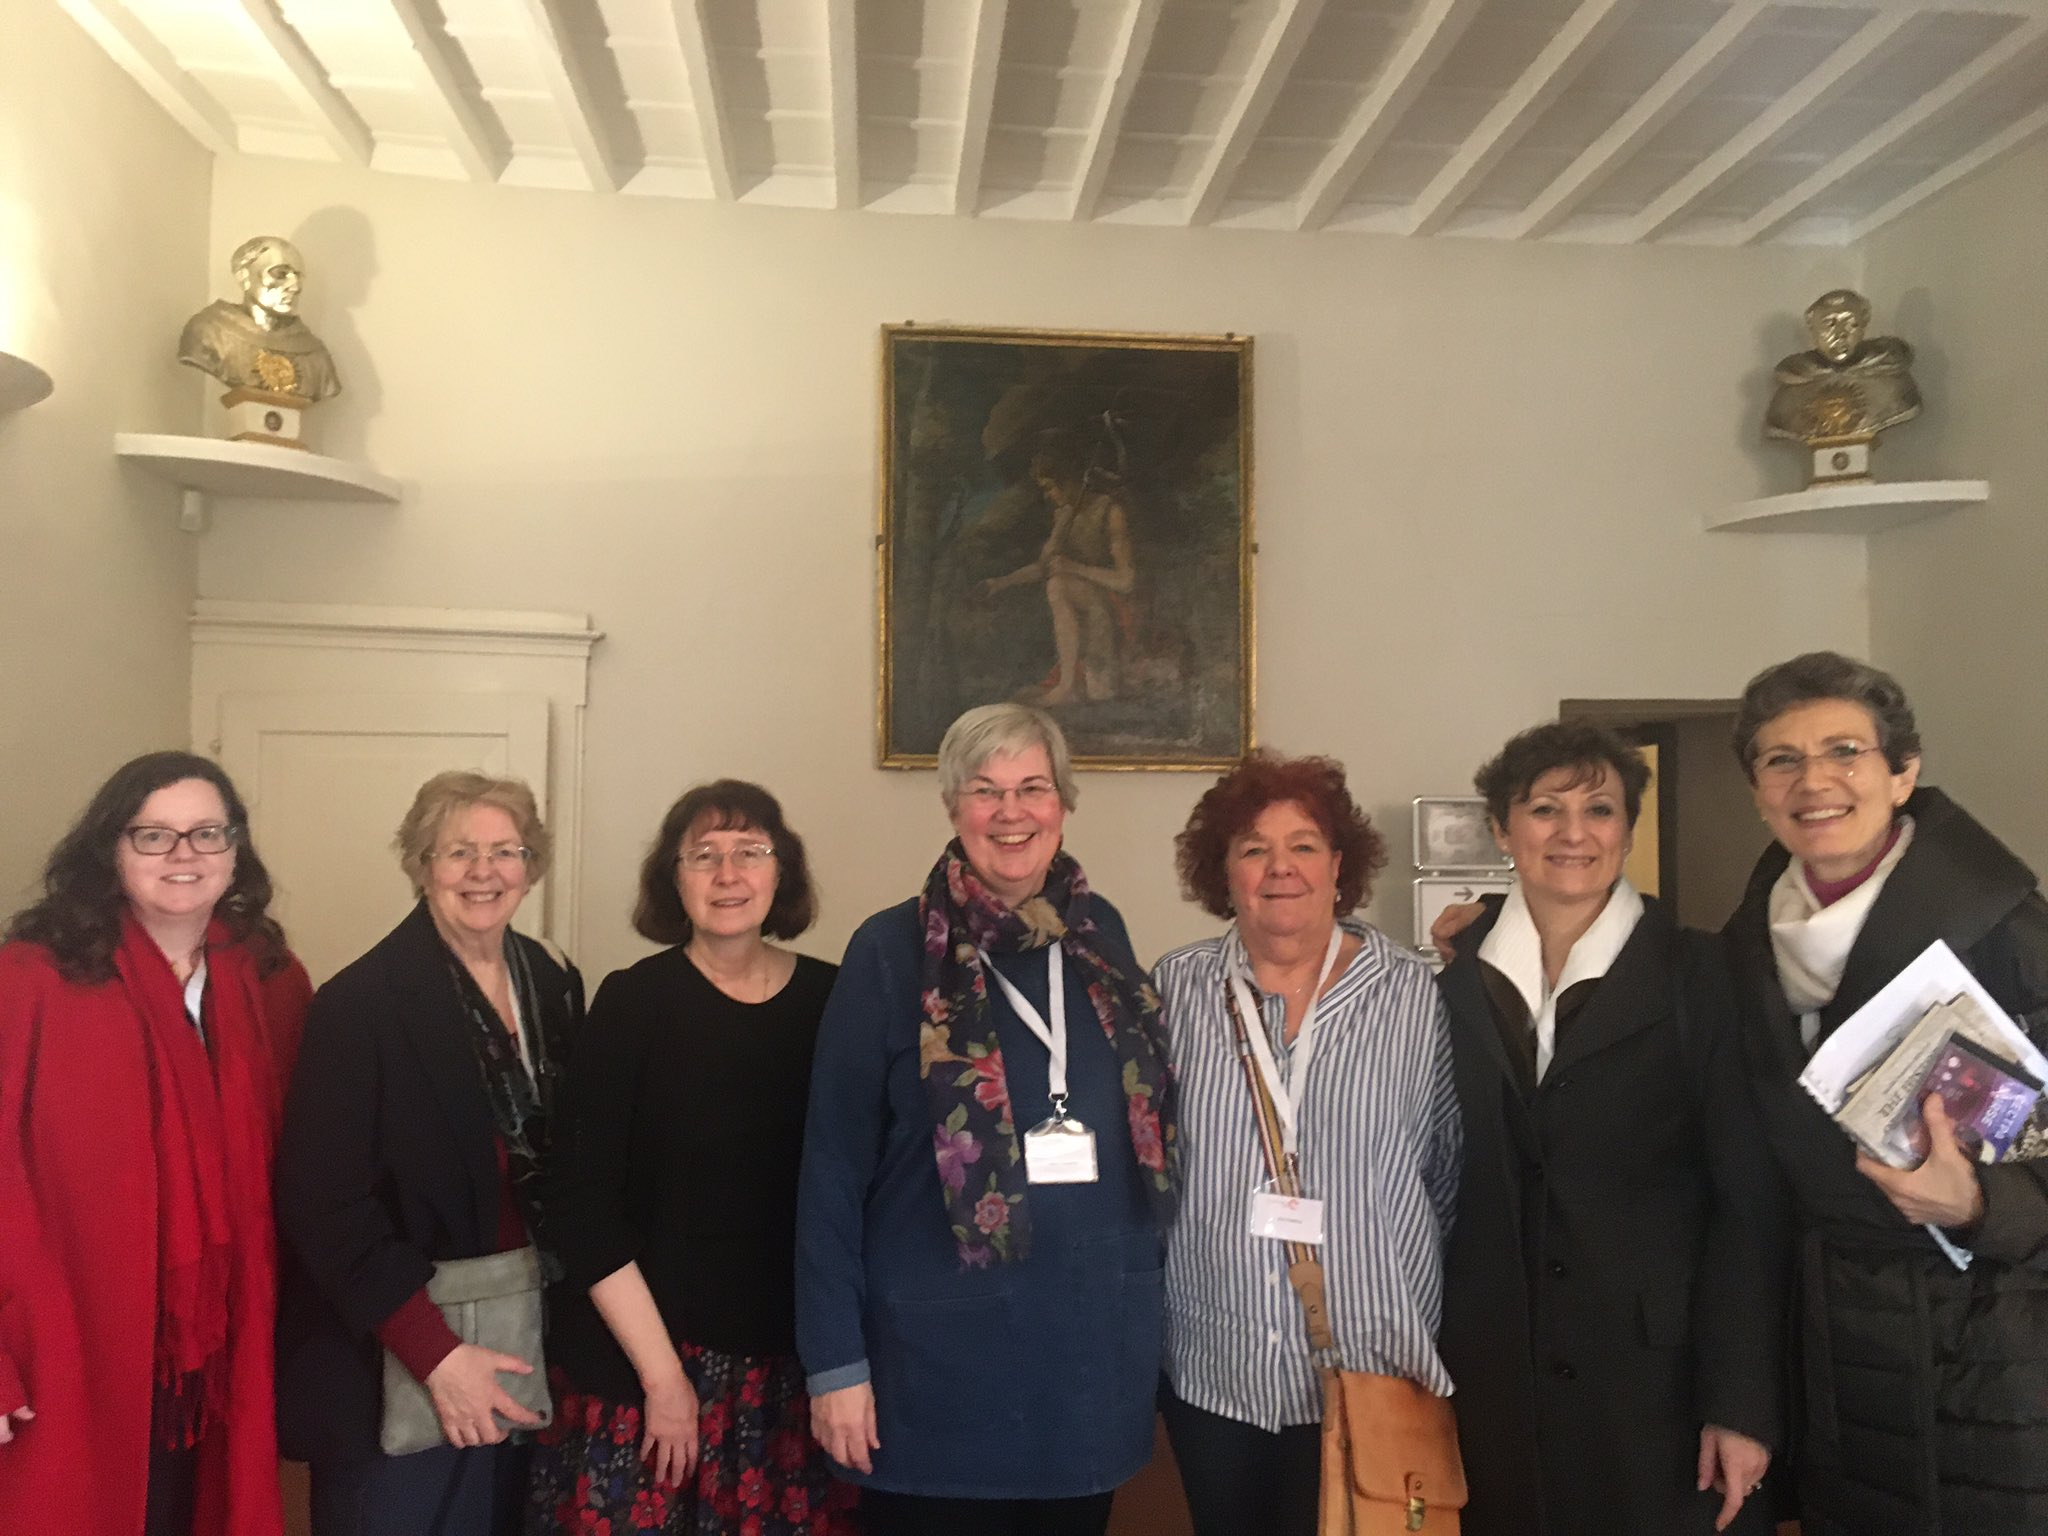 One last picture before we go. From left to right, Teresa Doherty, Helen Sweet, Christine Hallett, Claire Chatterton, Sue Hawkins, Anna La Torre, Cecilia Sironi